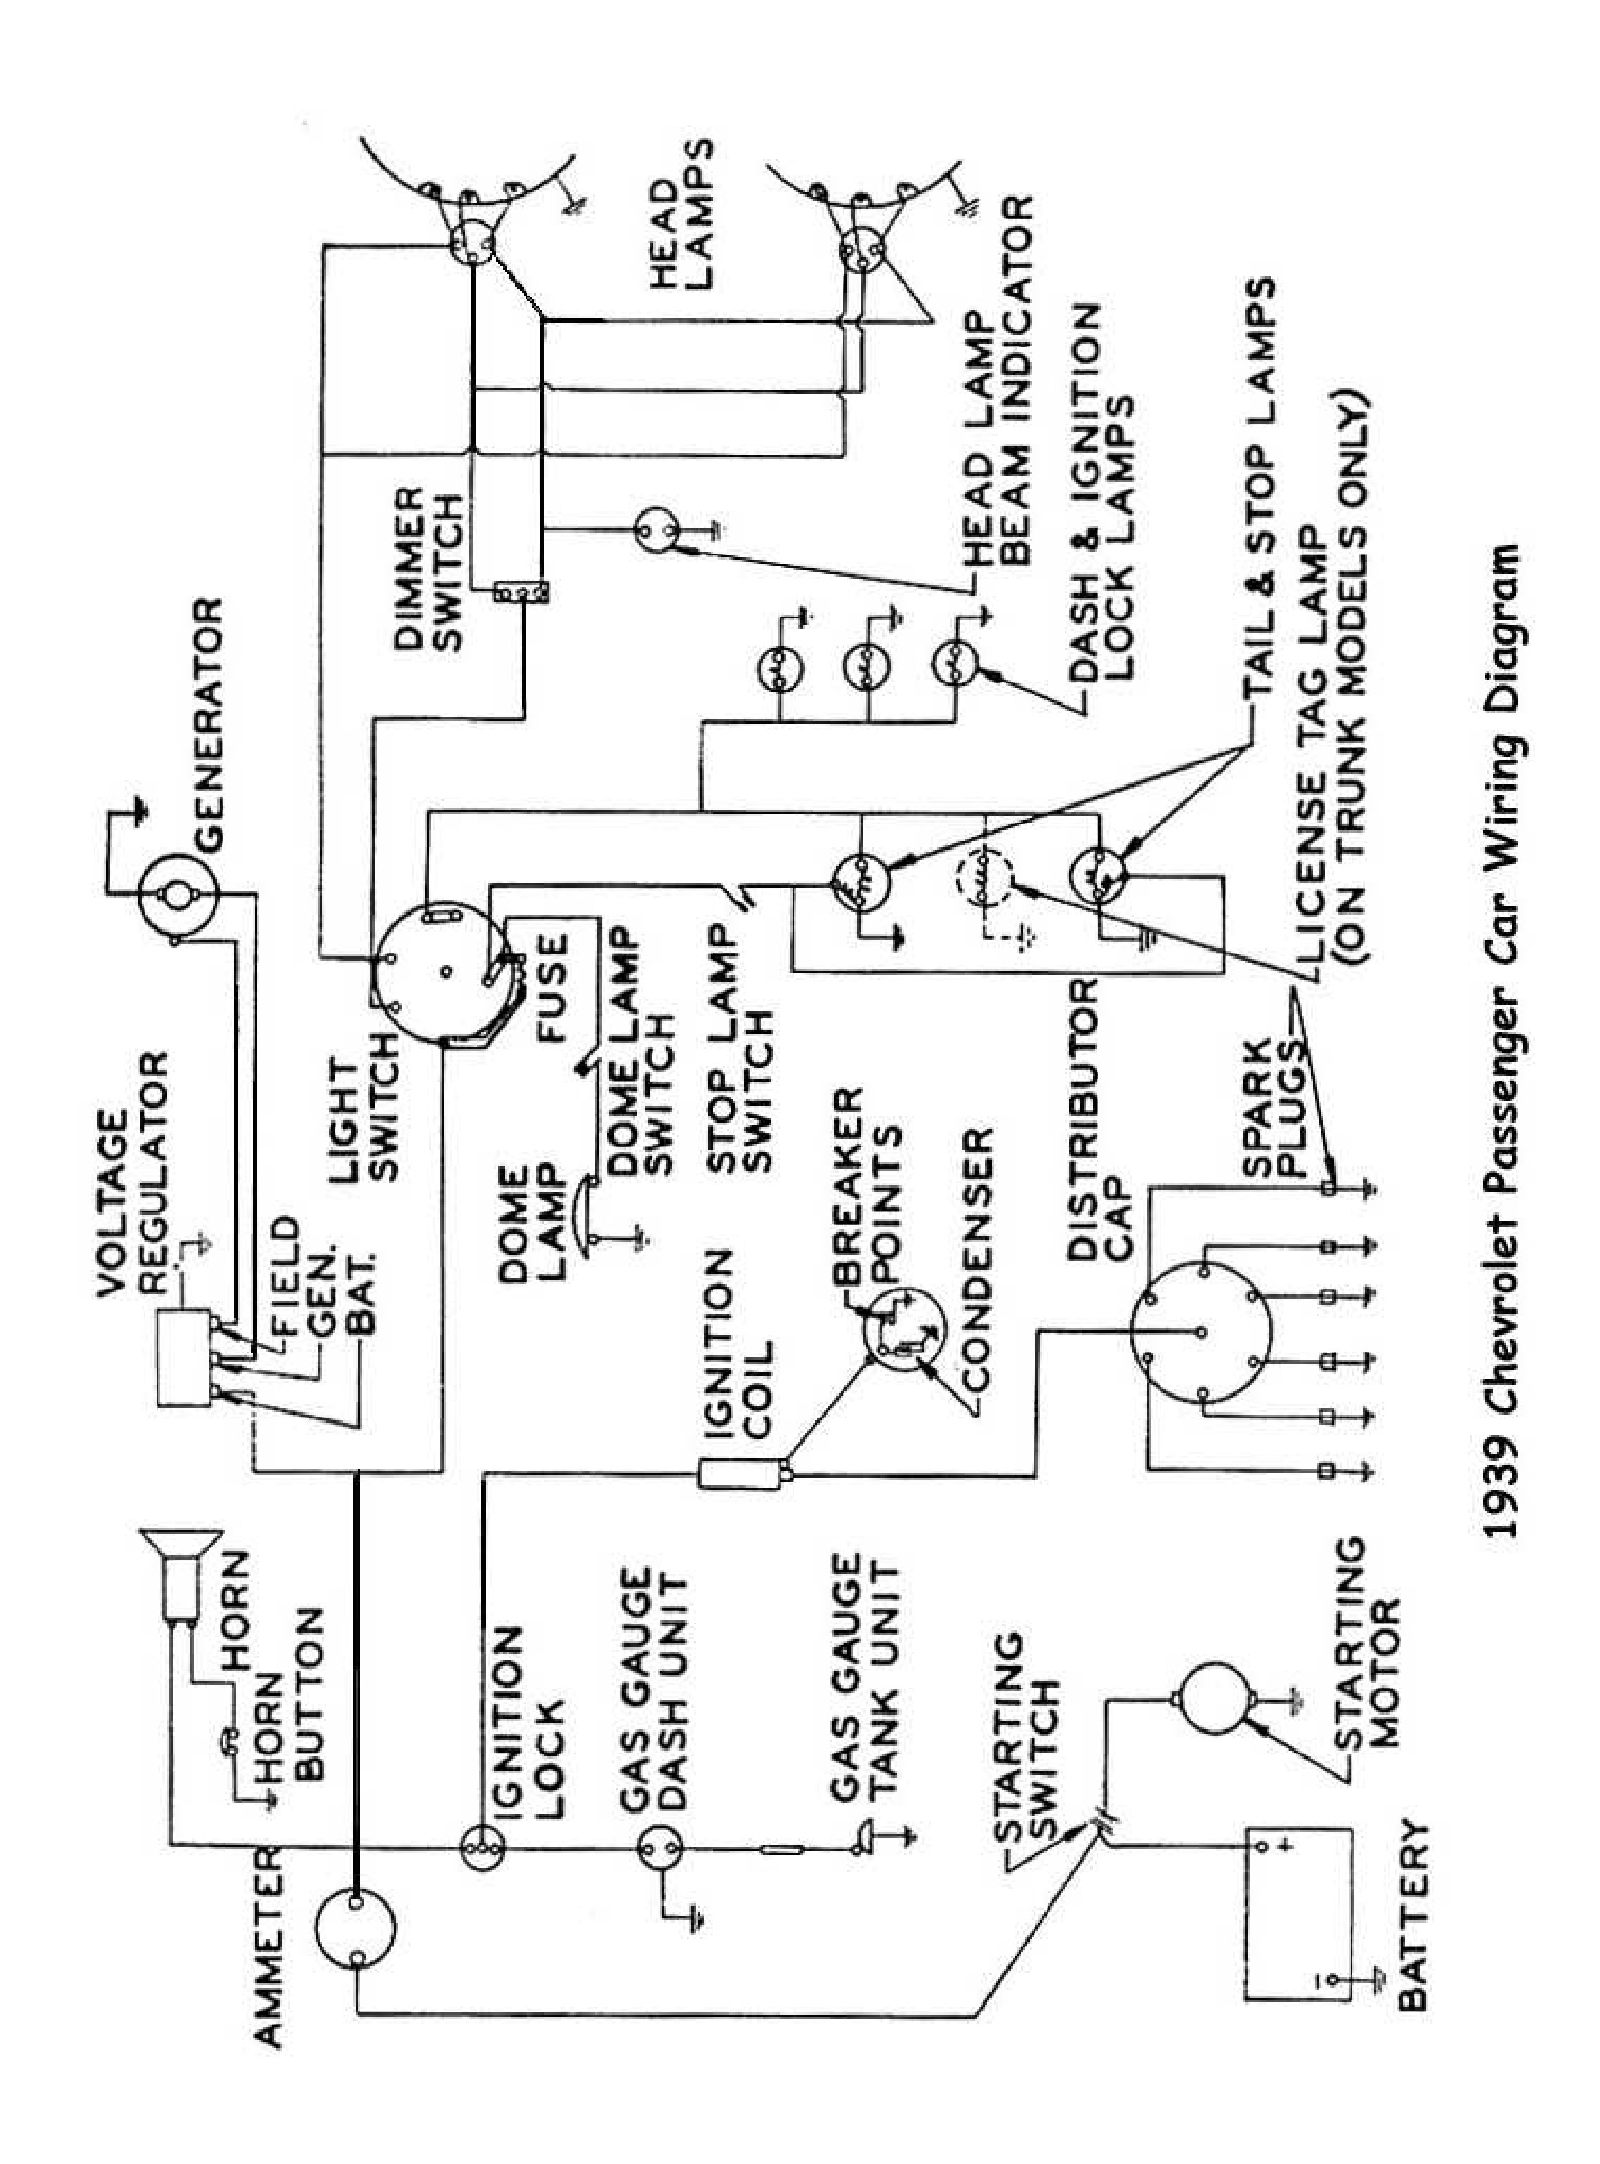 chevy wiring diagrams Chevy Dual Battery Wiring 1939 passenger car wiring